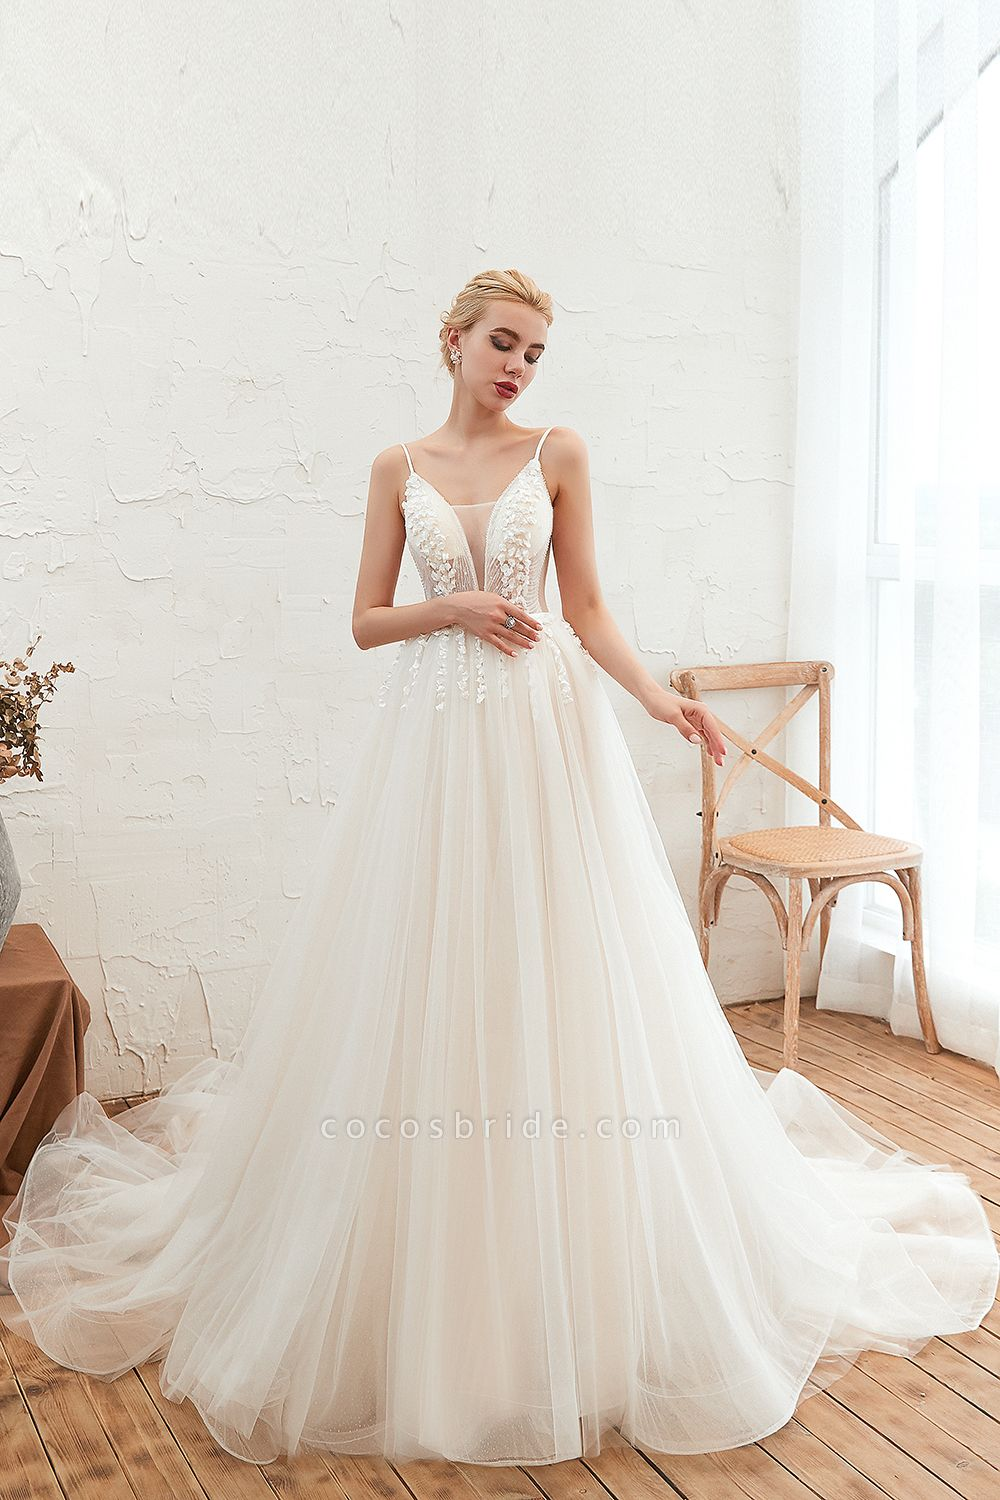 Awesome Spaghetti Strap Tulle A-line Wedding Dress